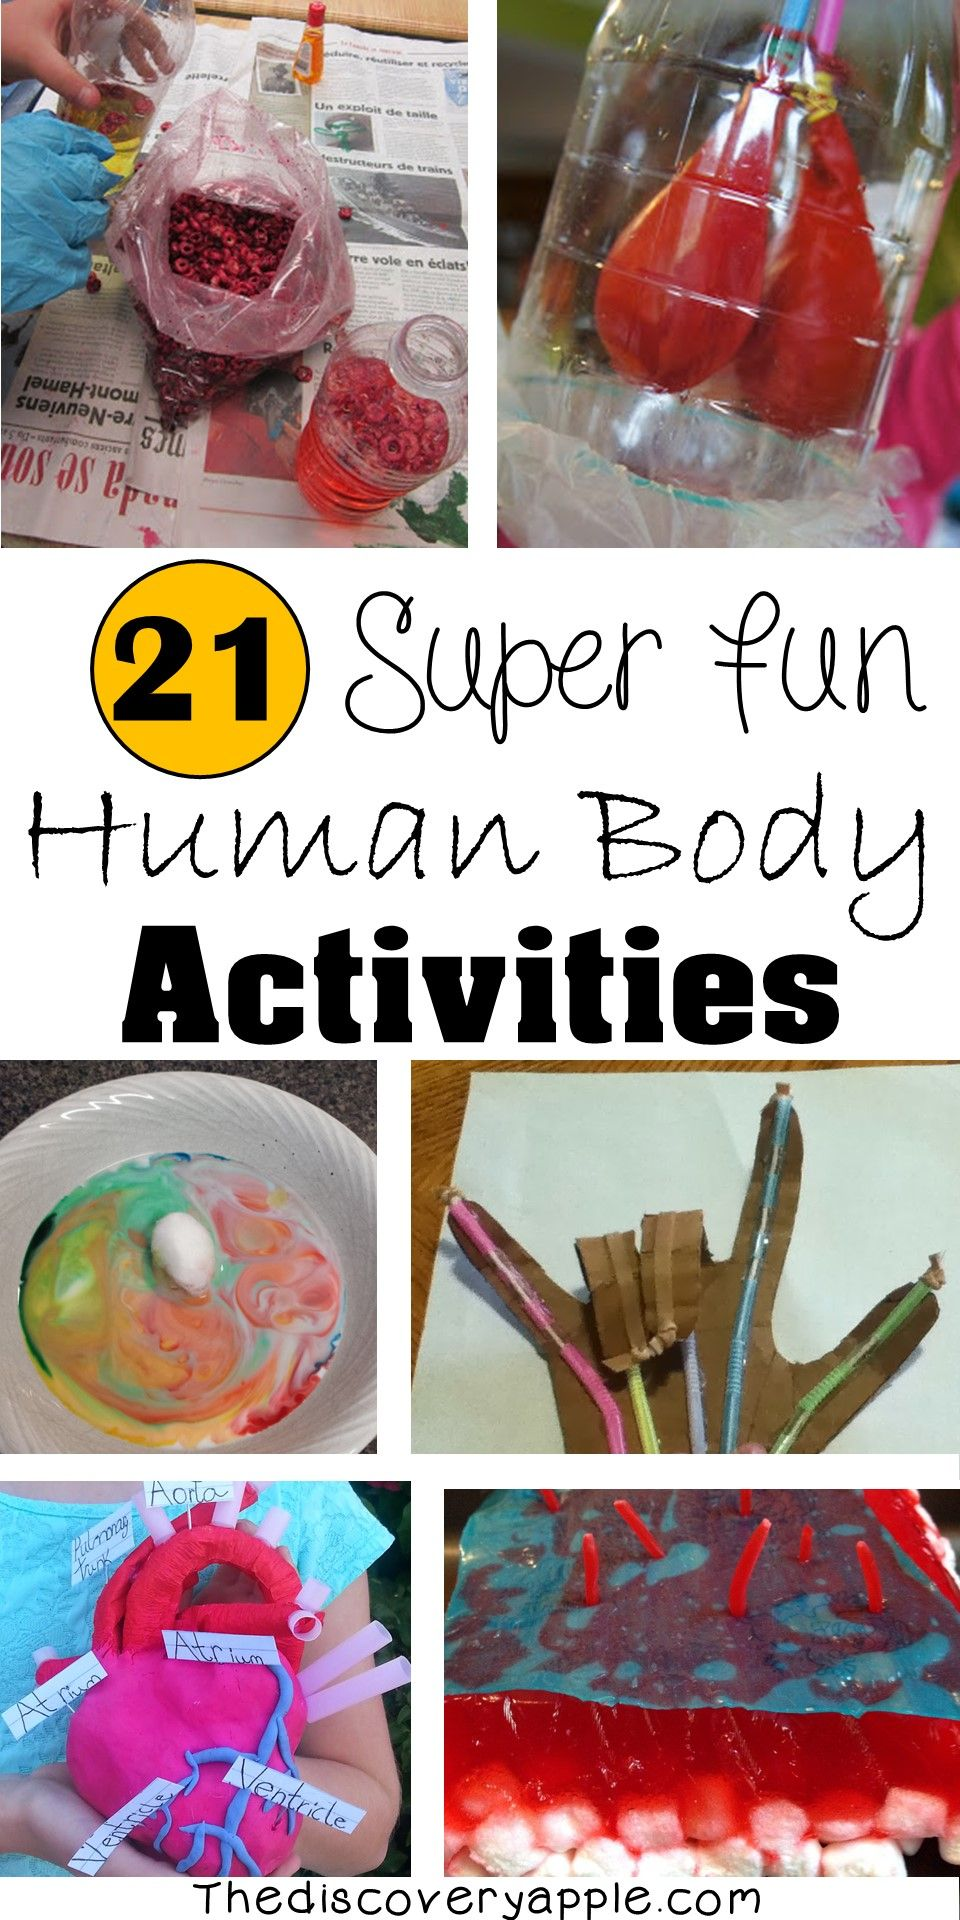 Grade 5 Human Body Worksheets Of 21 Super Fun Human Body Activities and Experiments for Kids